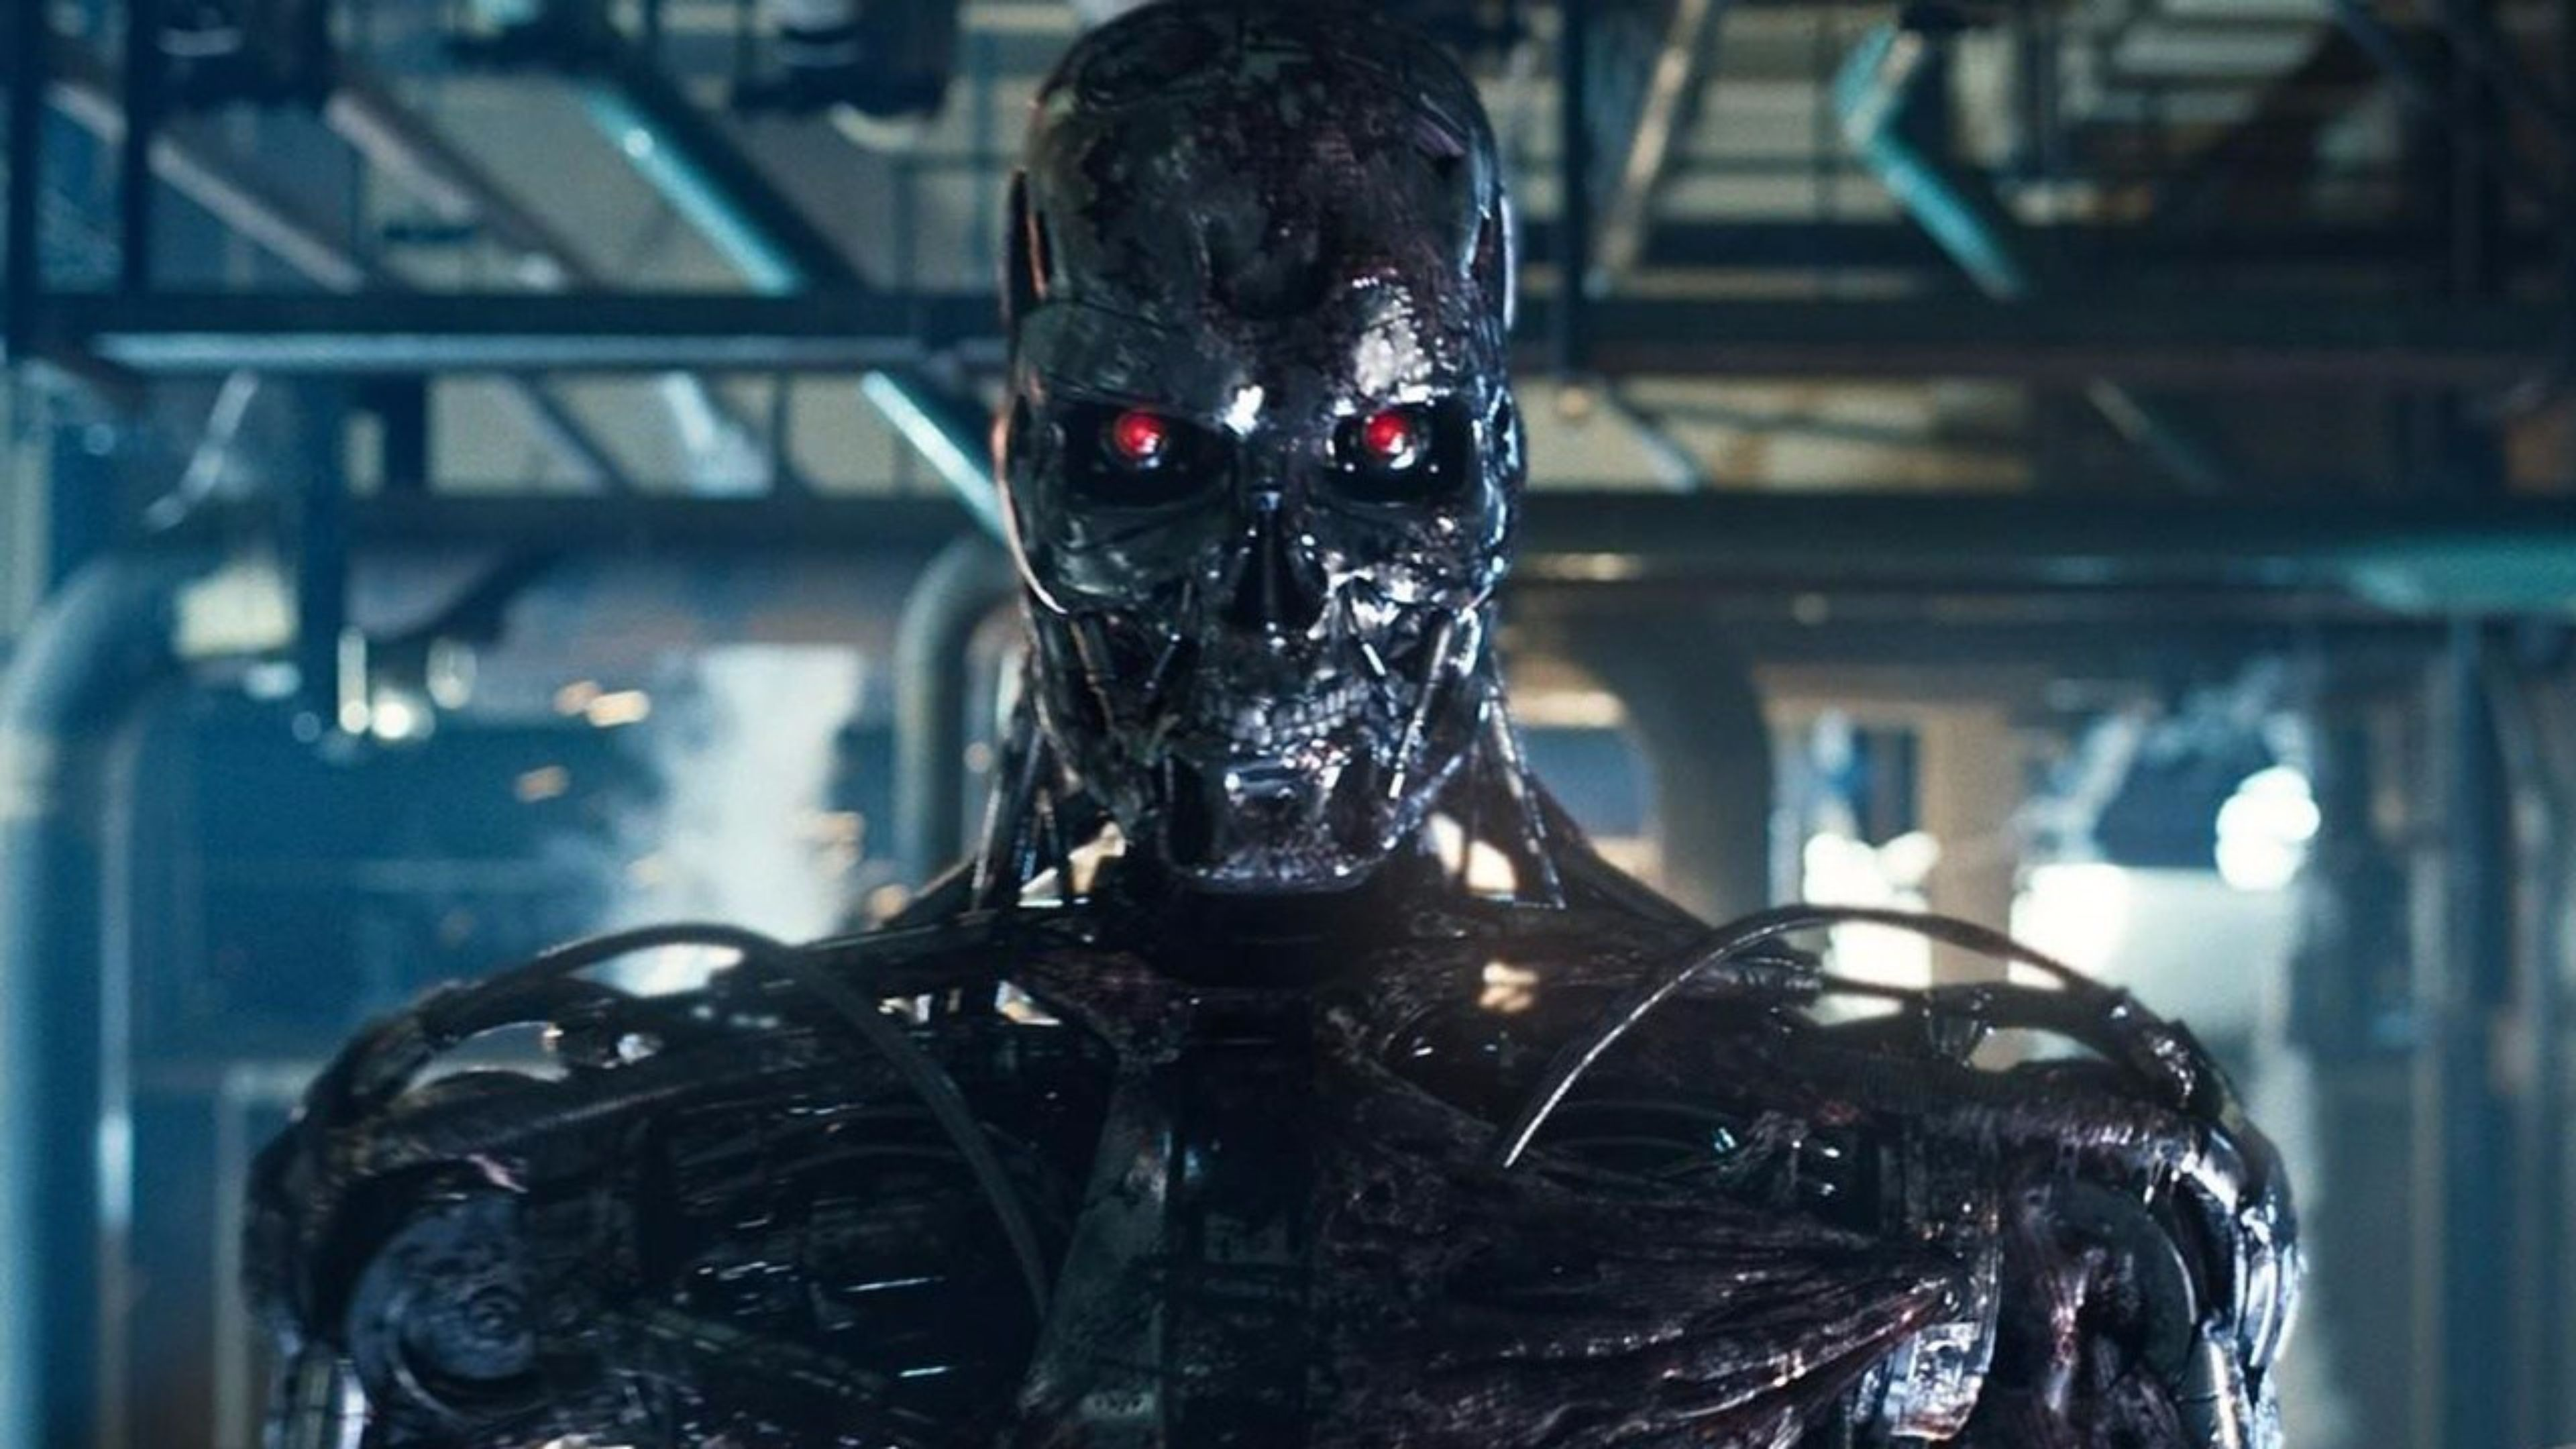 Reveal Terminator Genisys wallpaper